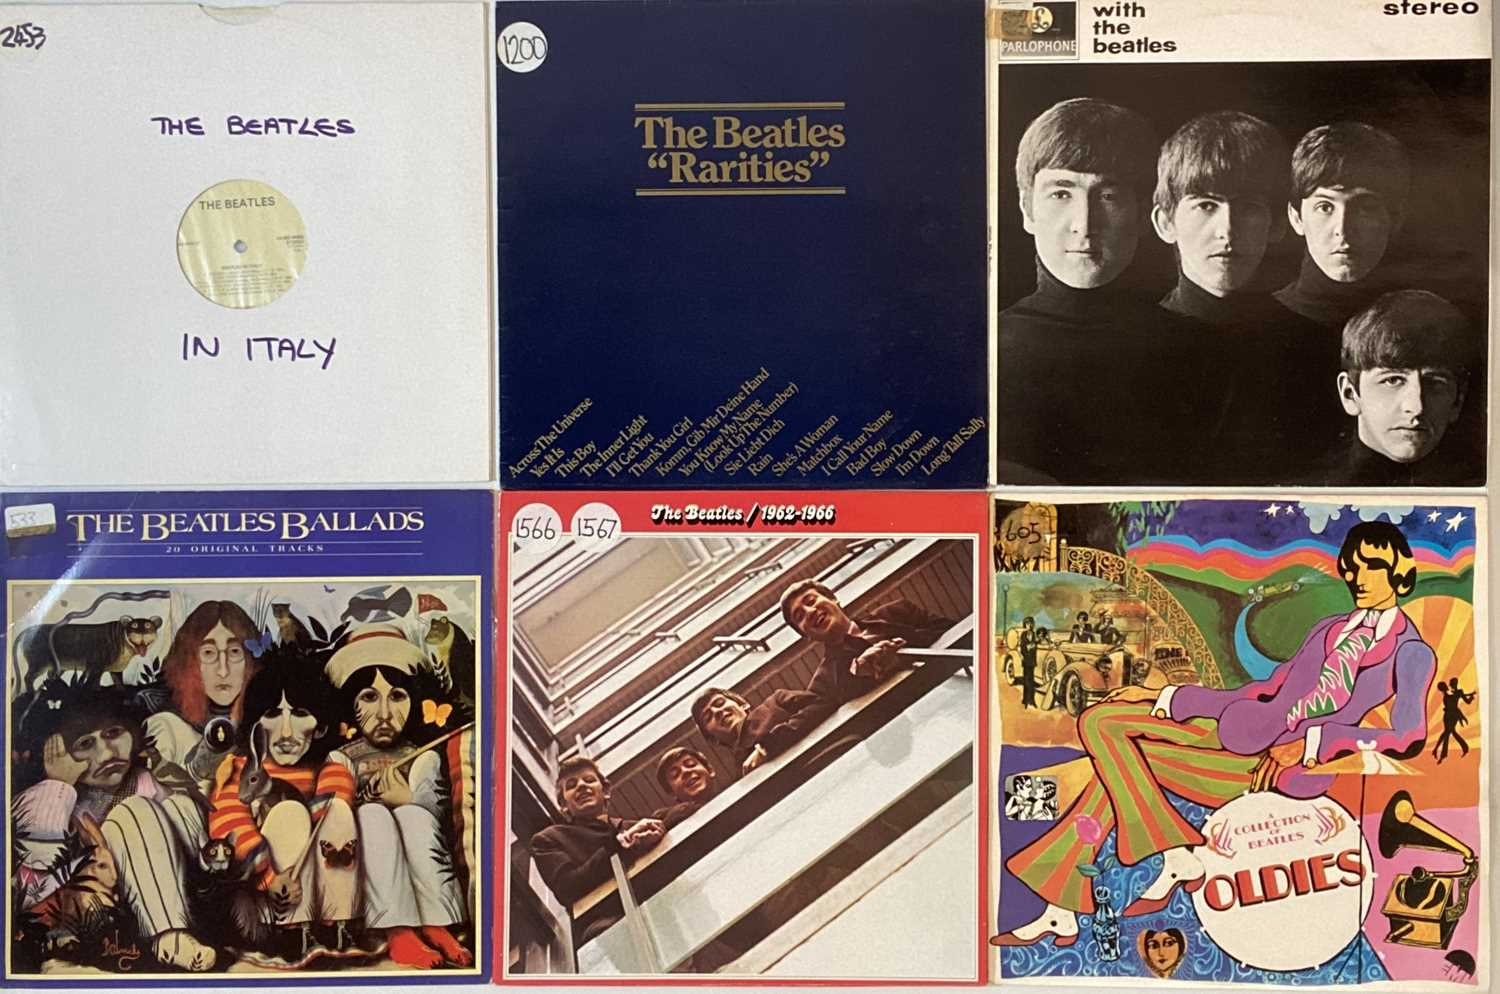 THE BEATLES/ THE ROLLING STONES AND RELATED LPs